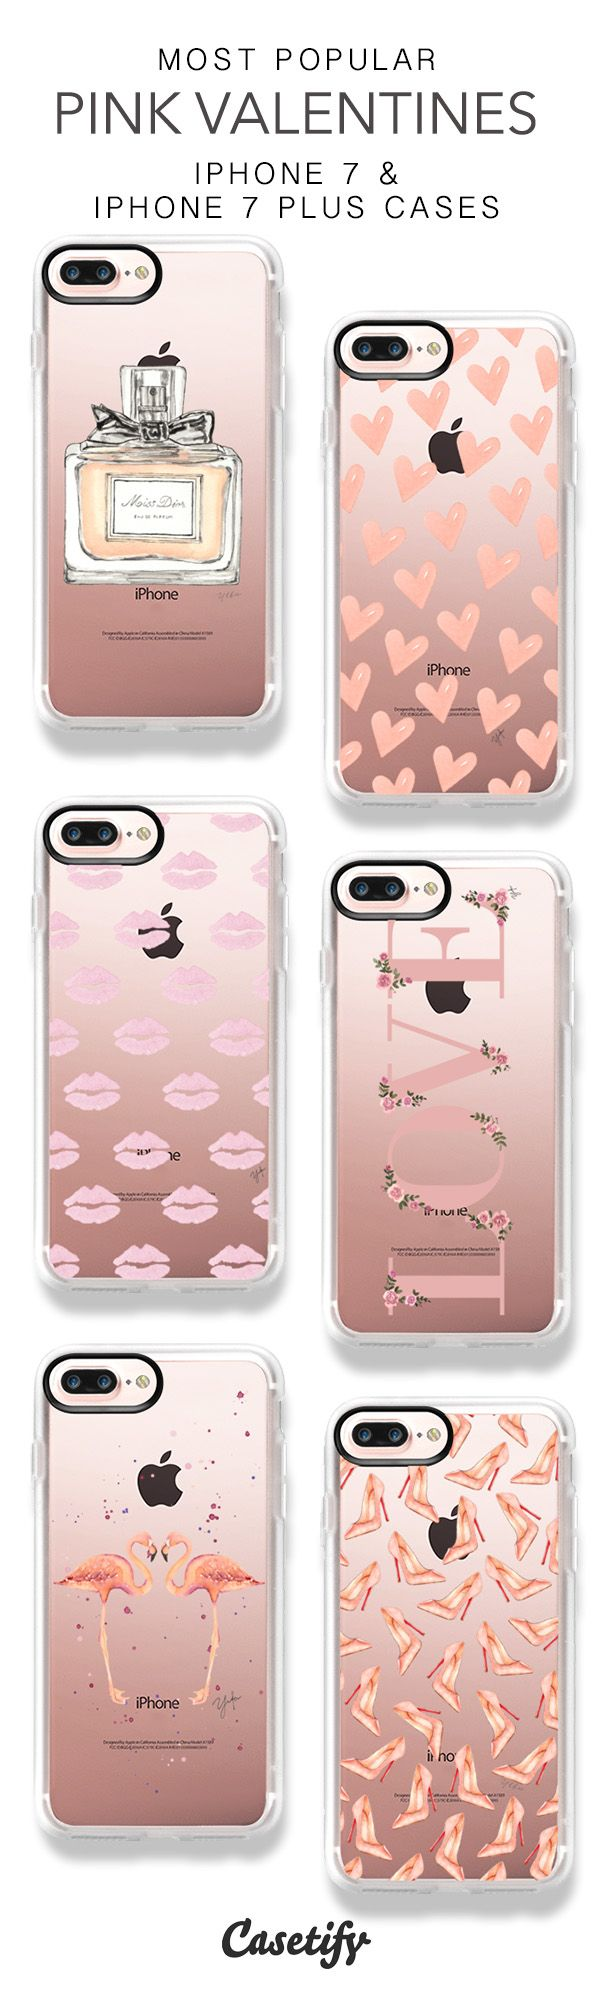 Most Popular Pink Valentines iPhone 7 Cases & iPhone 7 Plus Cases here > https://www.casetify.com/ylfagronvoldstudio/collection